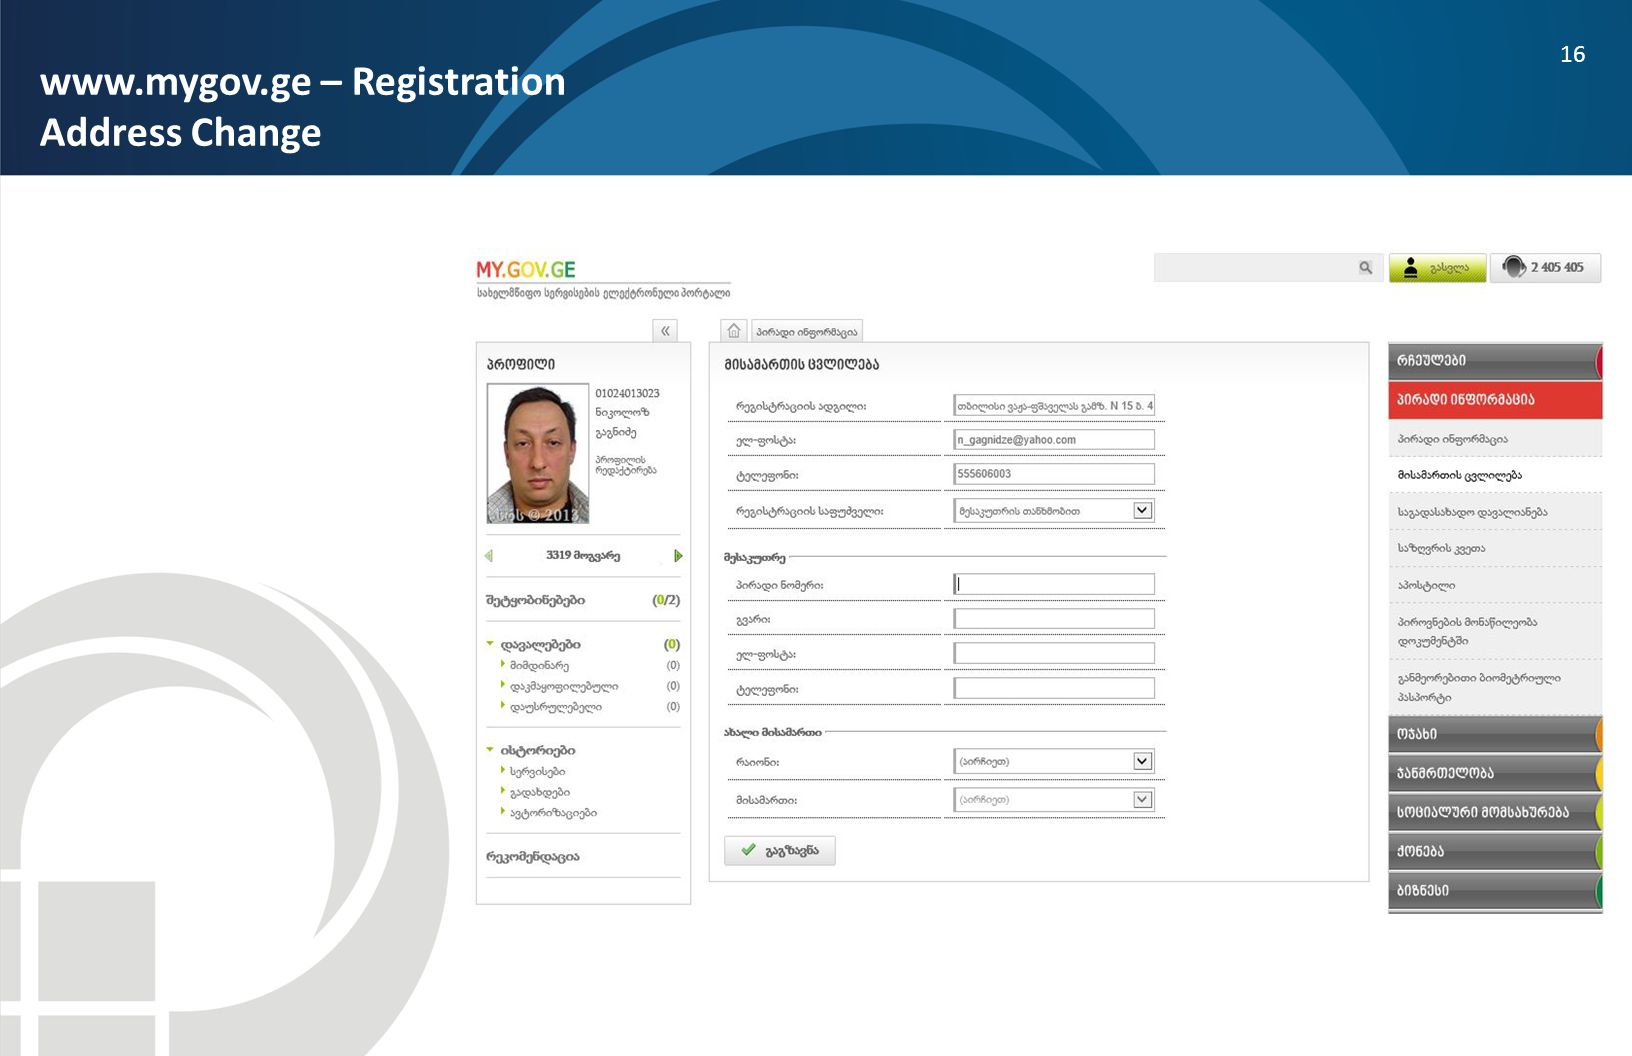 www.mygov.ge – Registration Address Change